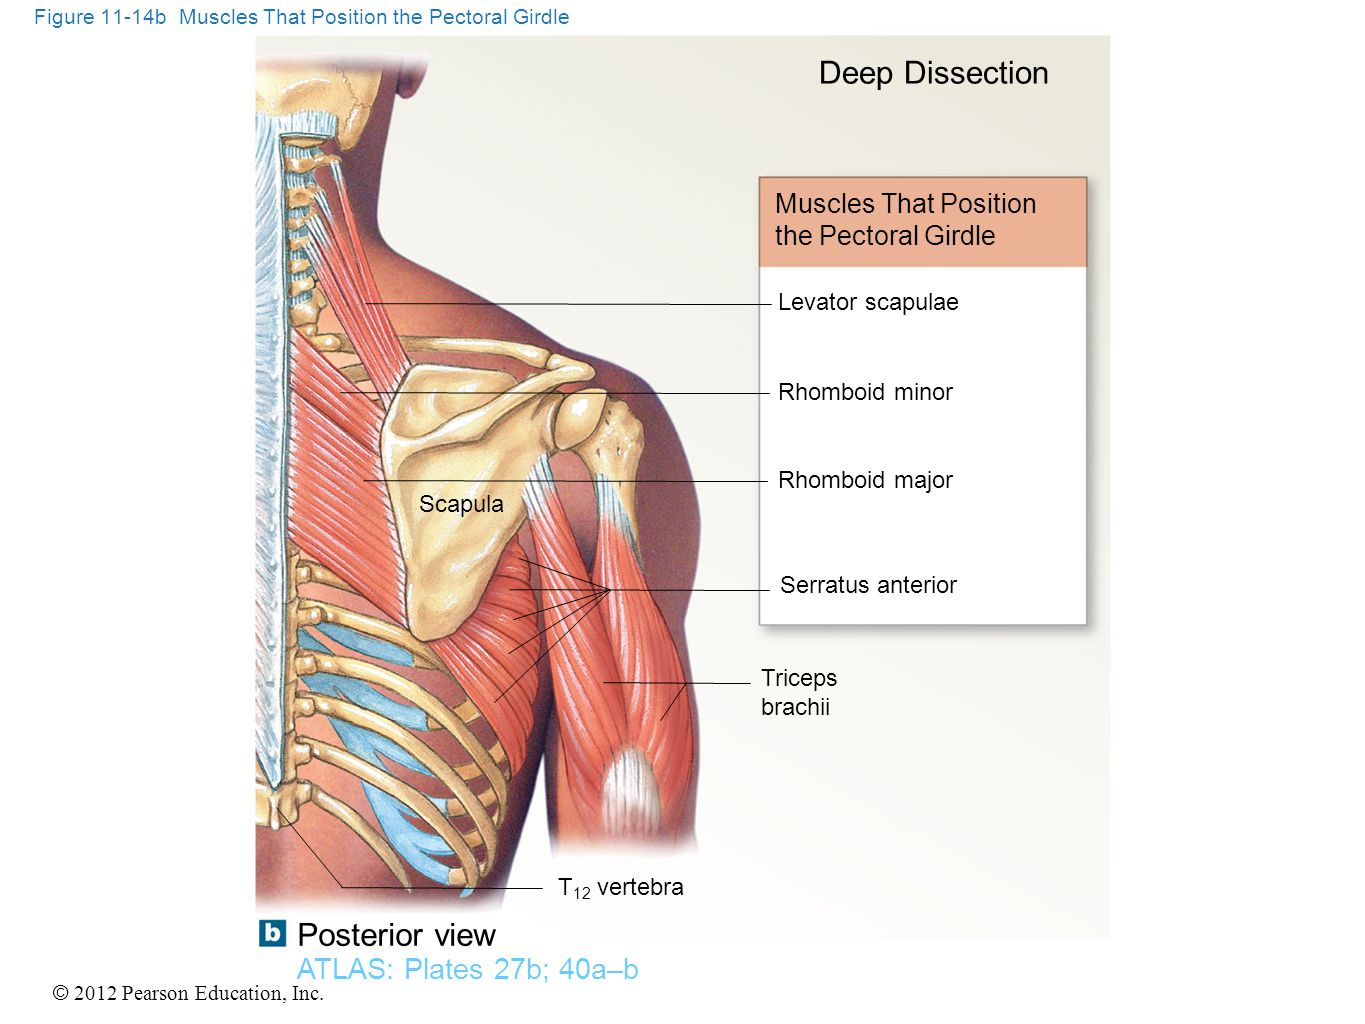 © 2012 Pearson Education, Inc. Figure 11-14b Muscles That Position the Pectoral Girdle Muscles That Position the Pectoral Girdle Deep Dissection Levat